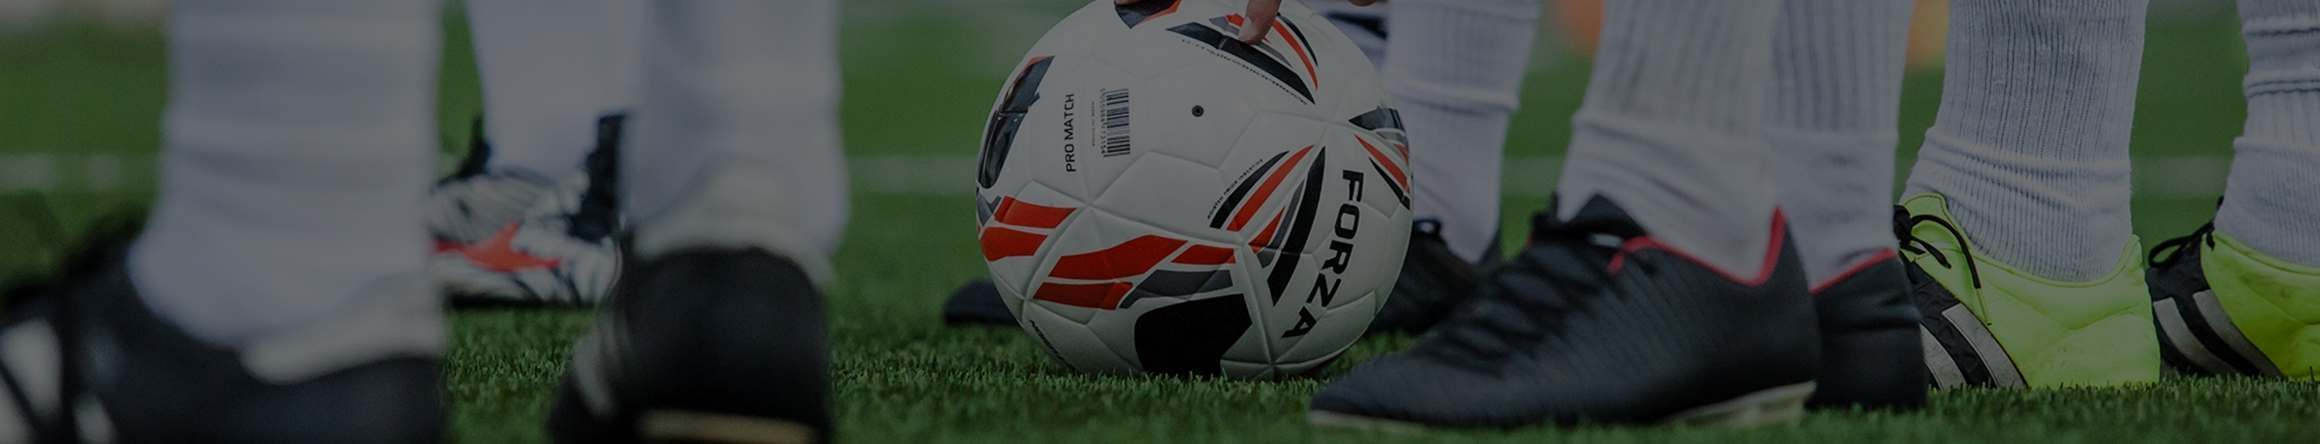 Football Equipment – From Goals to Footballs